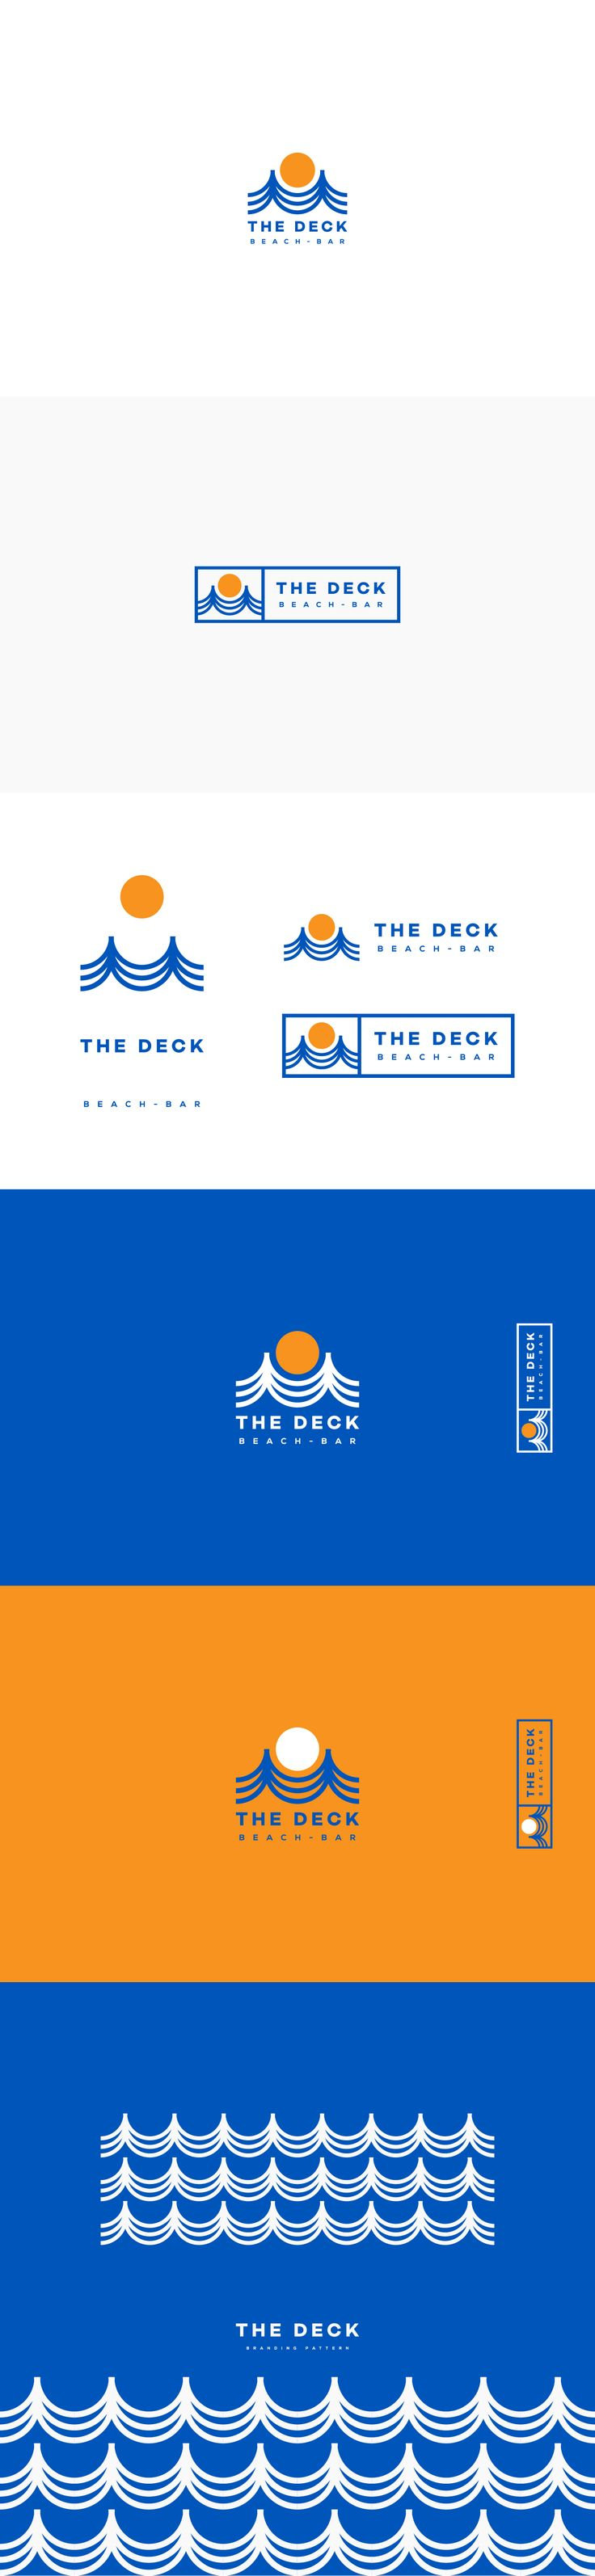 The deck2